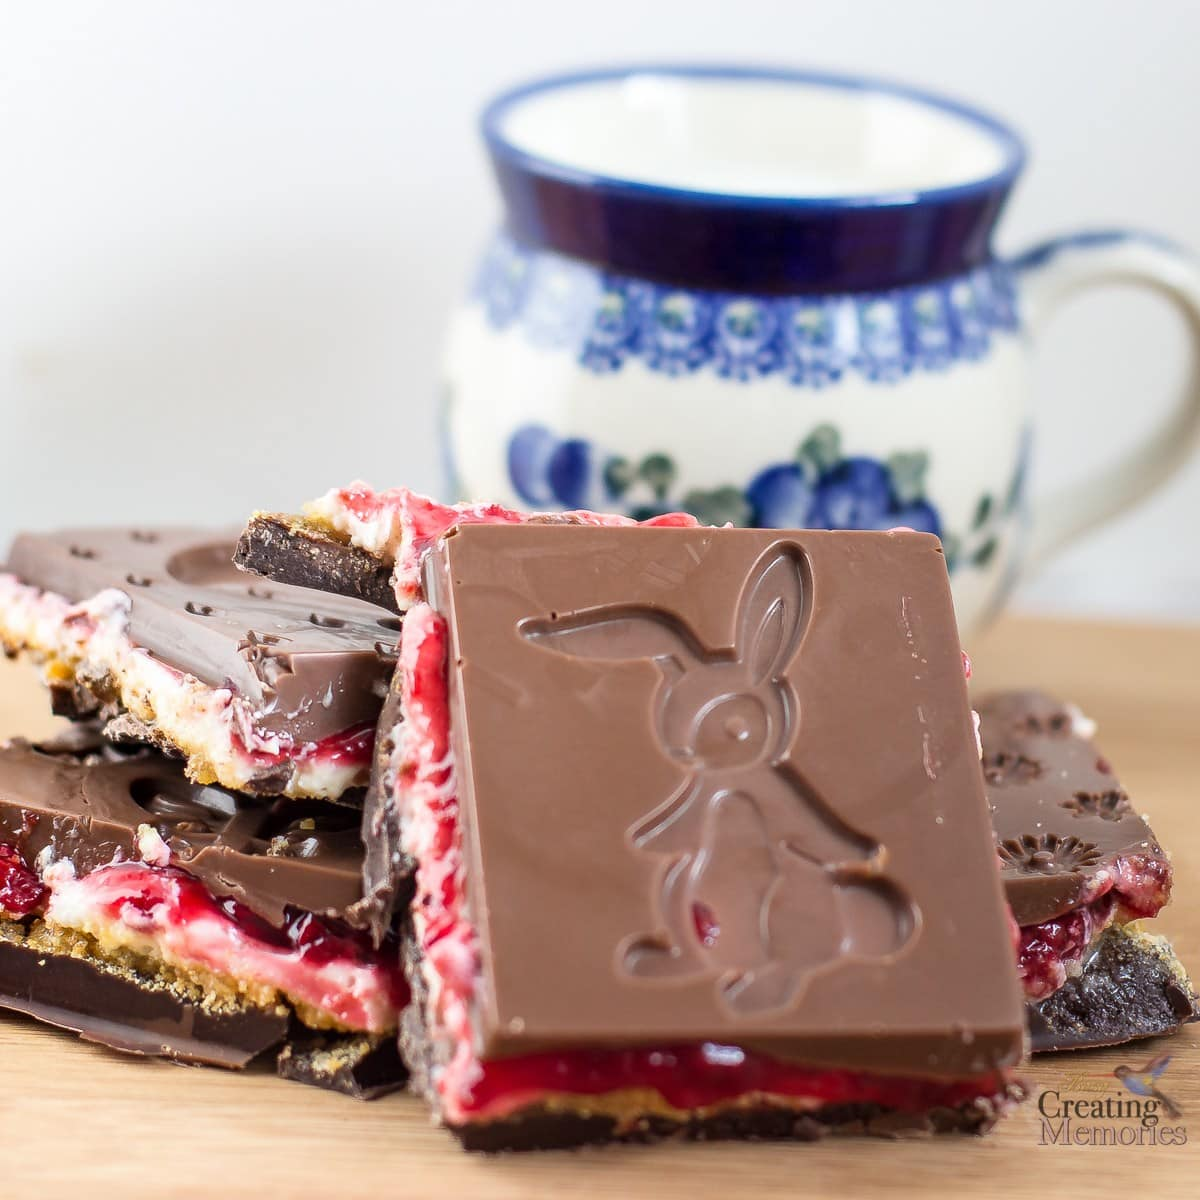 Raspberry Chocolate No Bake Cheesecake bars